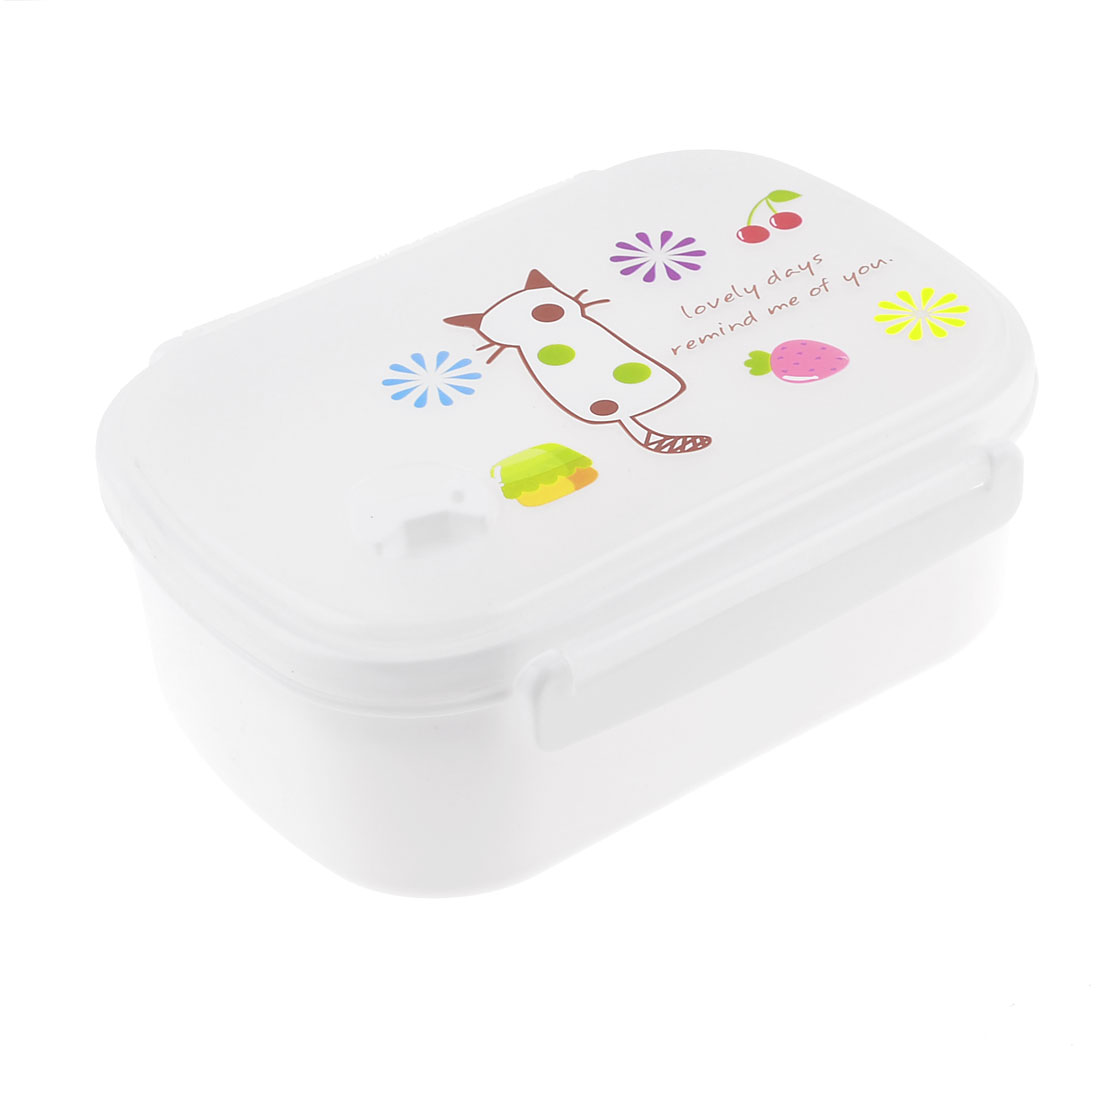 Household Hole Design Two Layer Dinner Case Lunch Box Organizer White